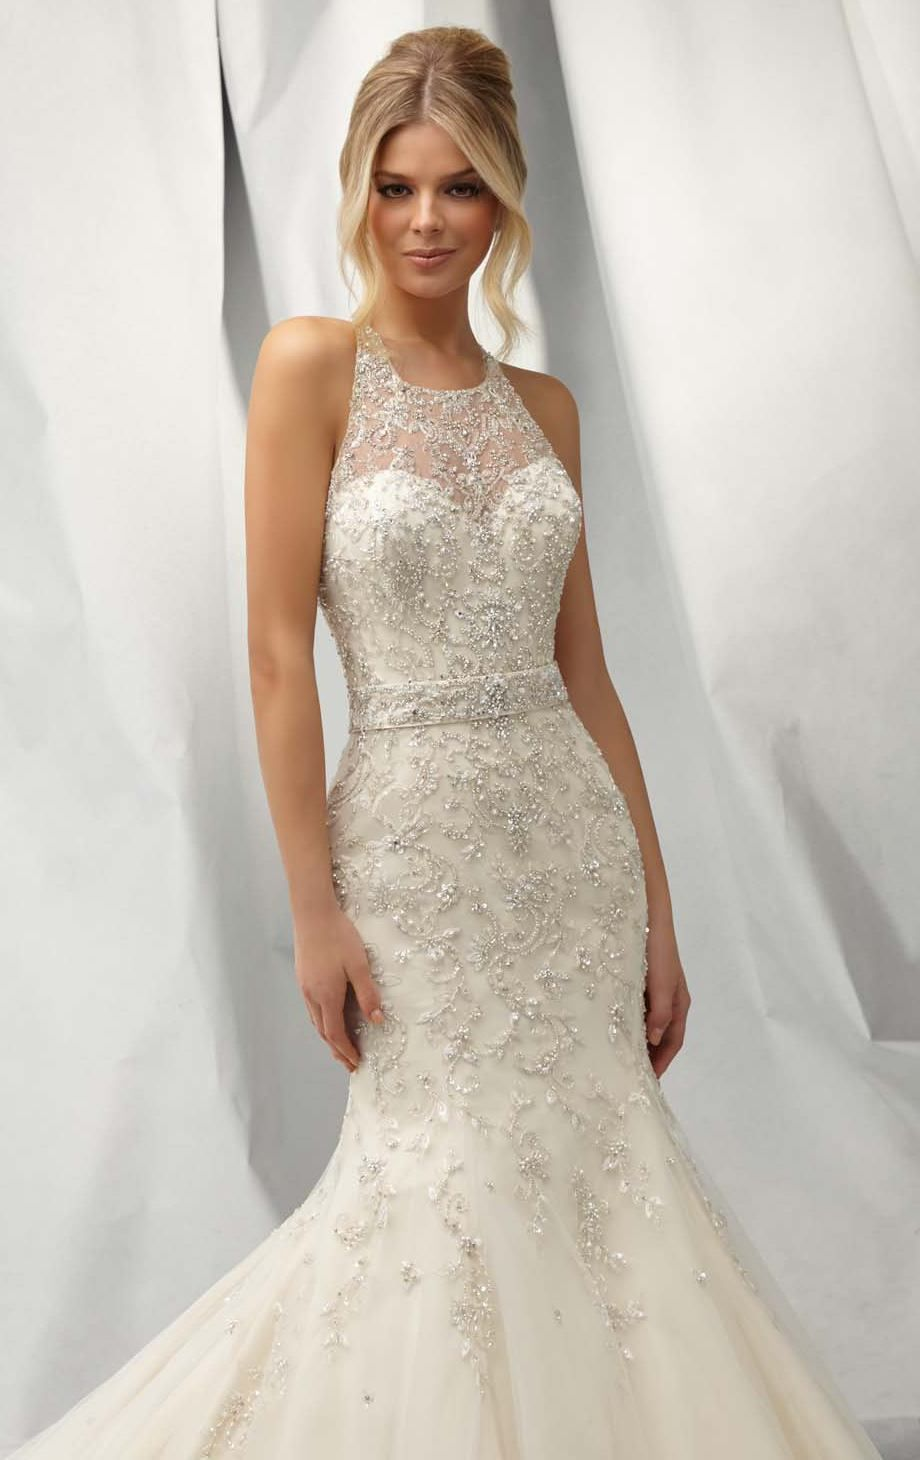 Look Absolutely Stunning In Angelina Faccenda By Mori Lee 1301 This Sophisticated Net Wedding Gown